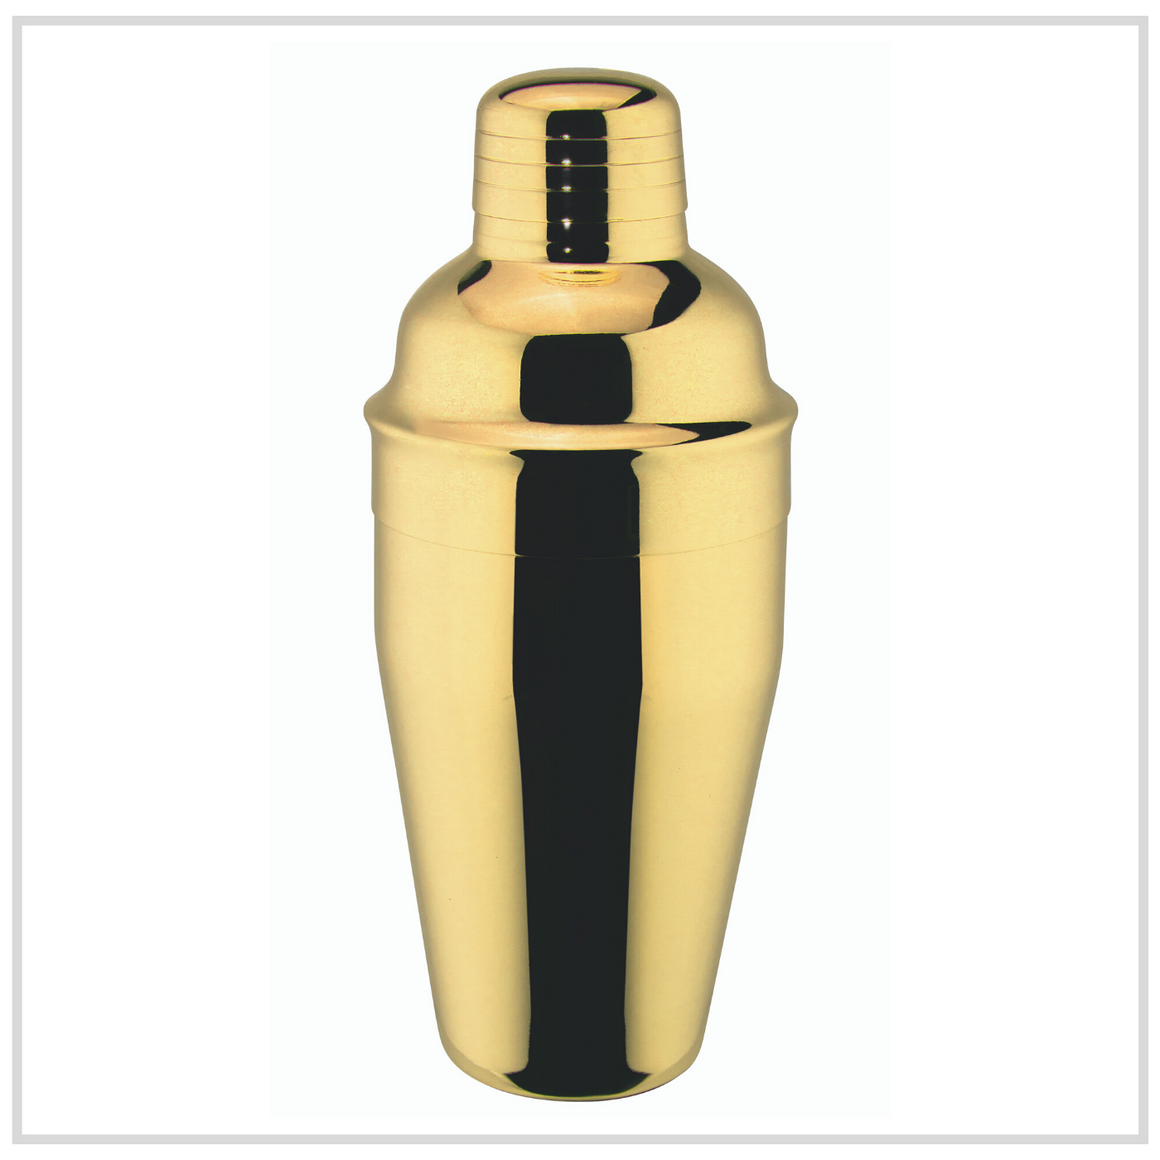 Ilsa Stainless Steel Cocktail Shaker - Gold - 500ml